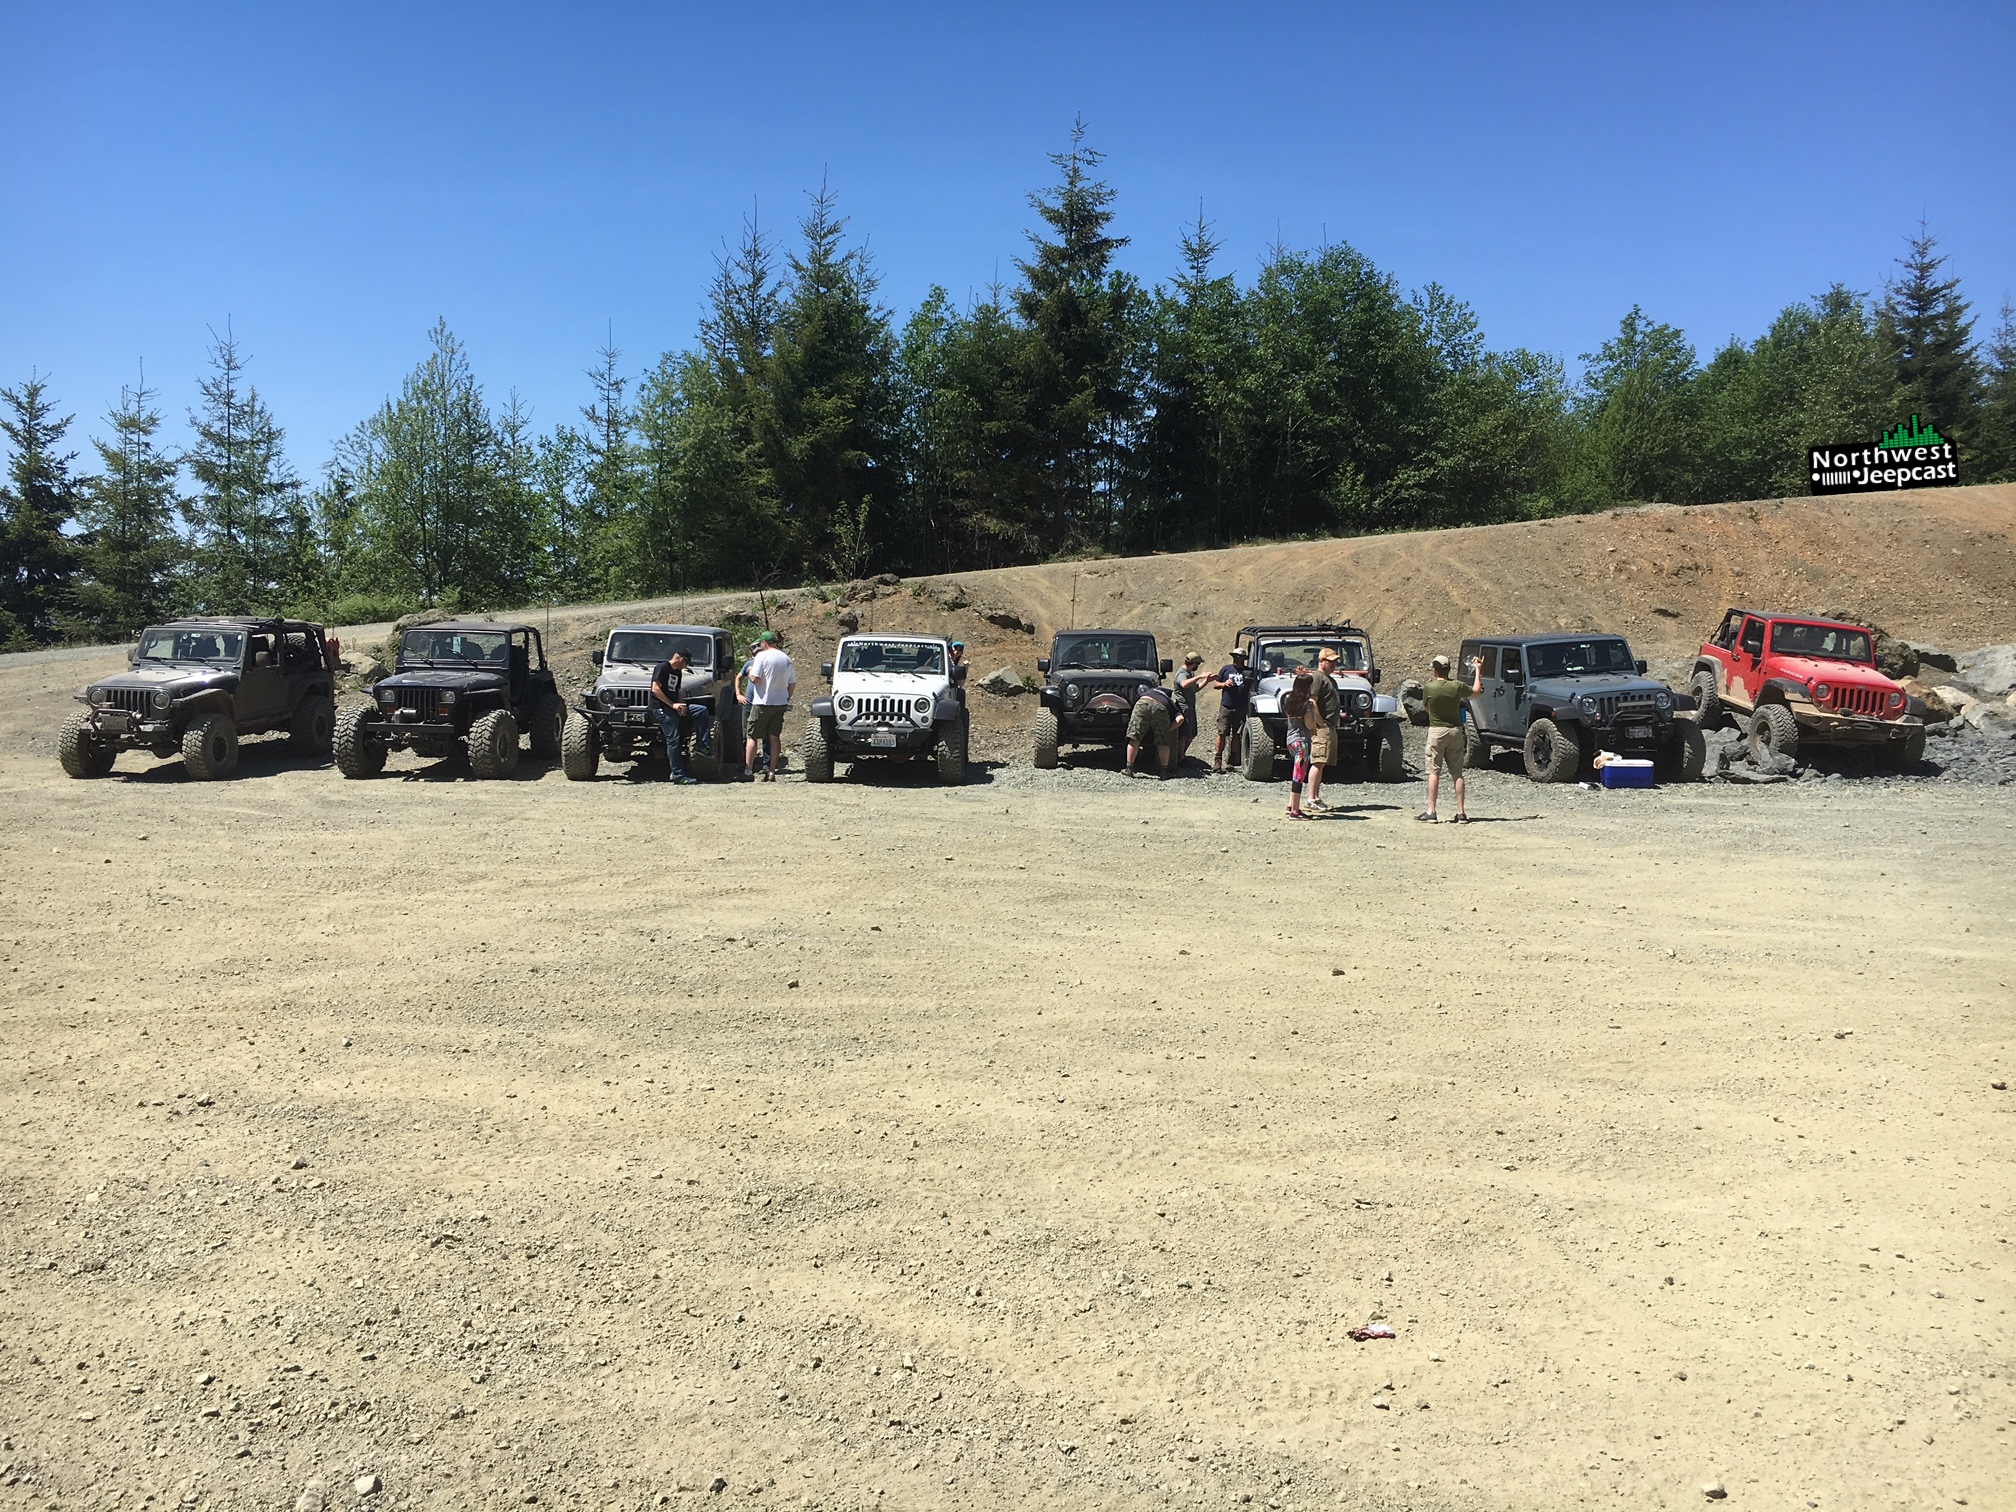 Northwest Jeepcast - A Jeep Podcast - Walker Valley